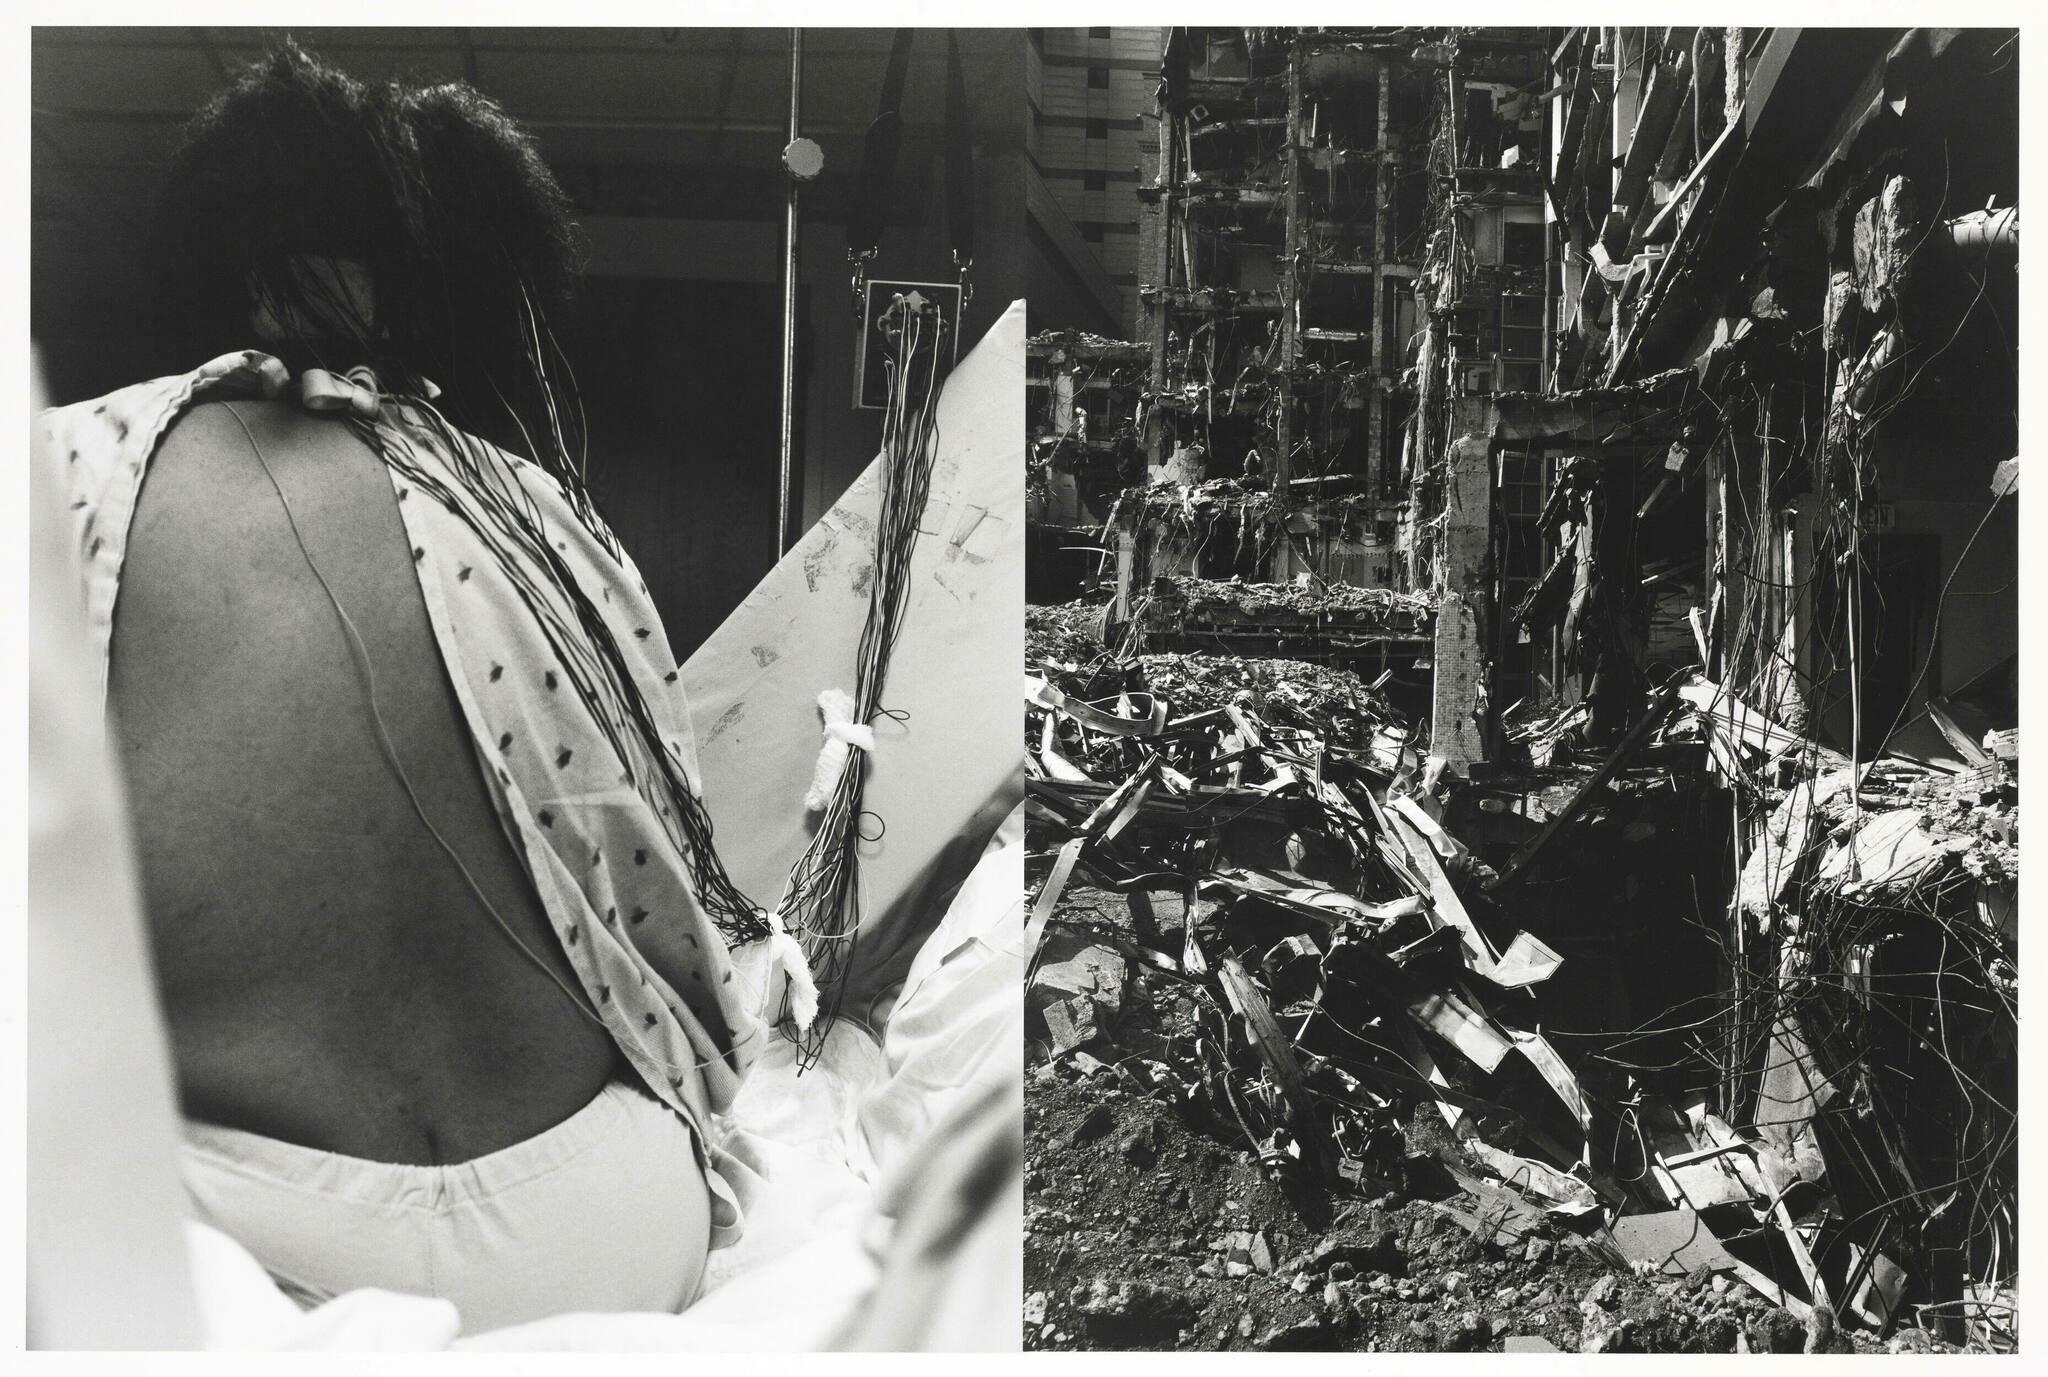 A black and white photo of a woman in a hospital bed her gown exposing her back, adjacent, a building in ruins.